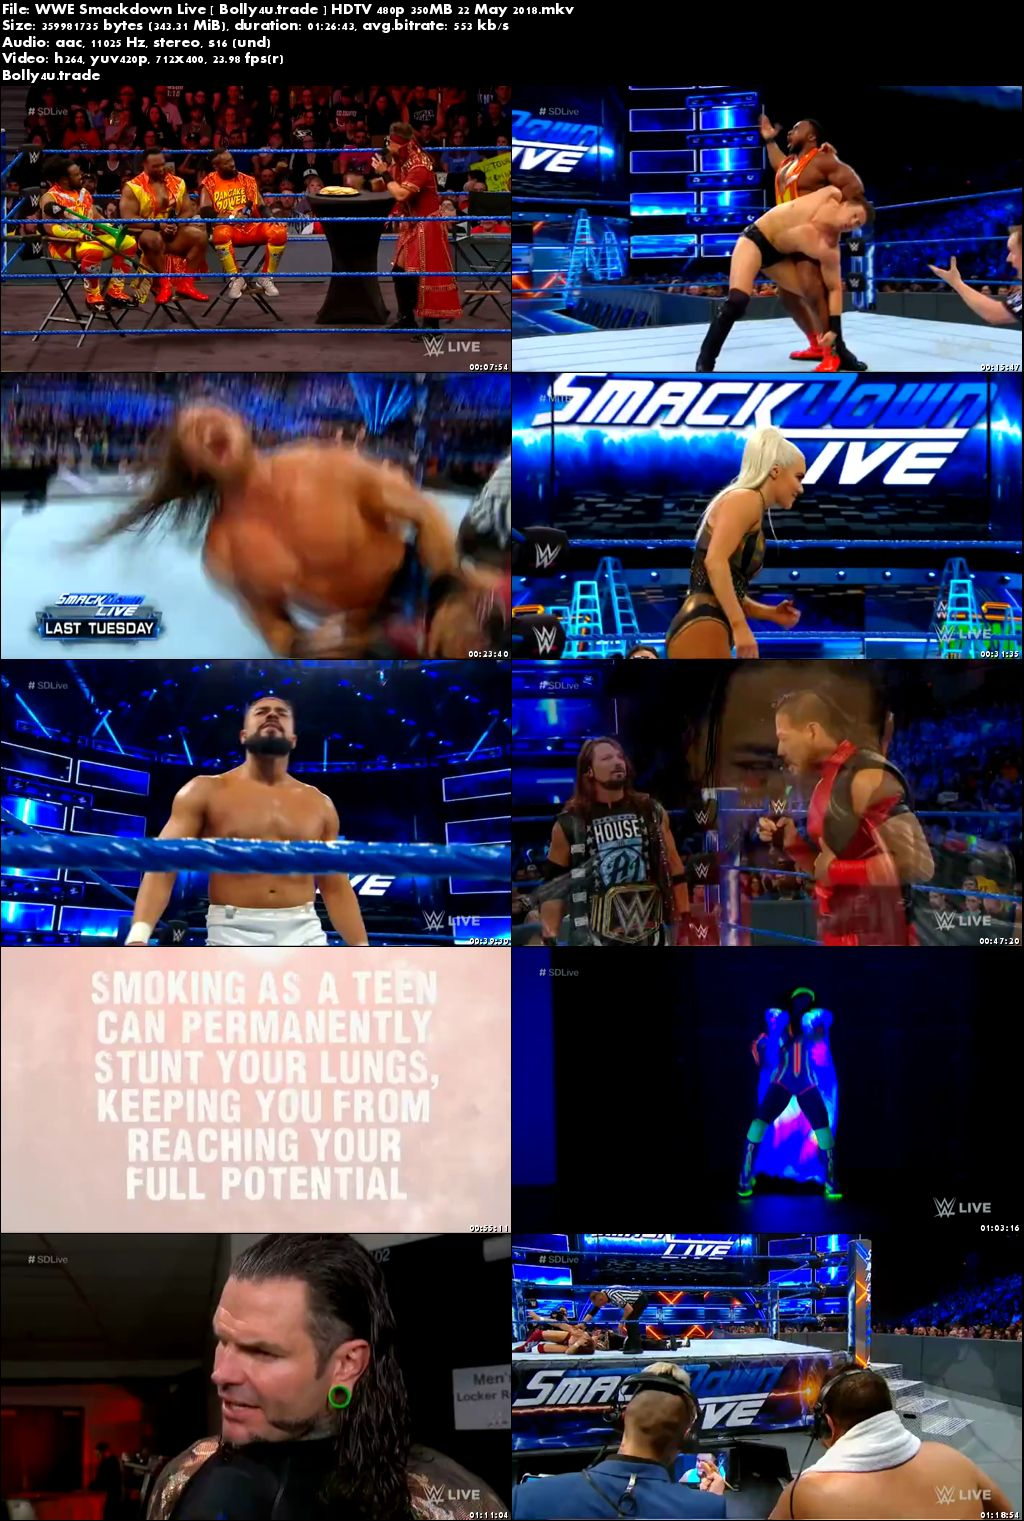 WWE Smackdown Live HDTV 480p 350MB 22 May 2018 Download